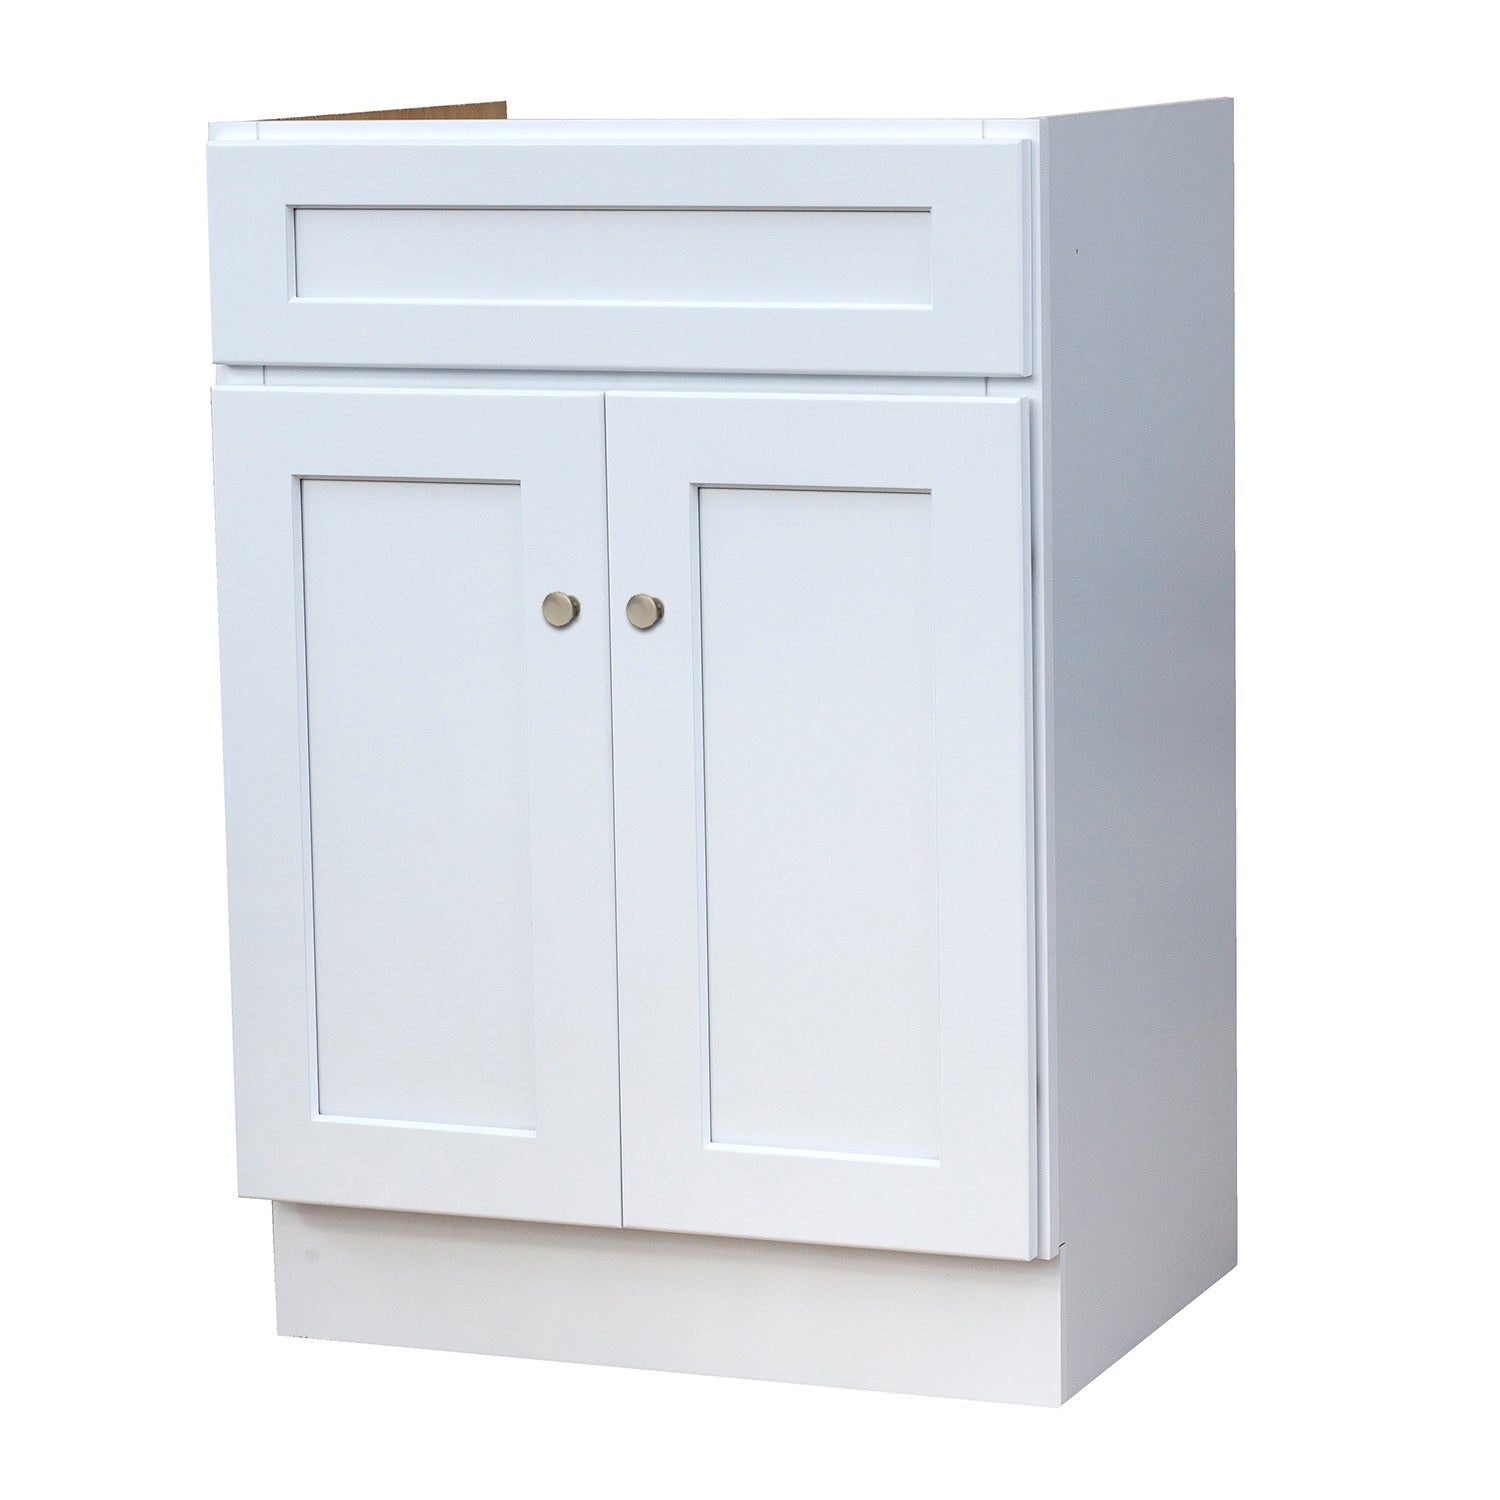 24x18 White Shaker Bathroom Vanity